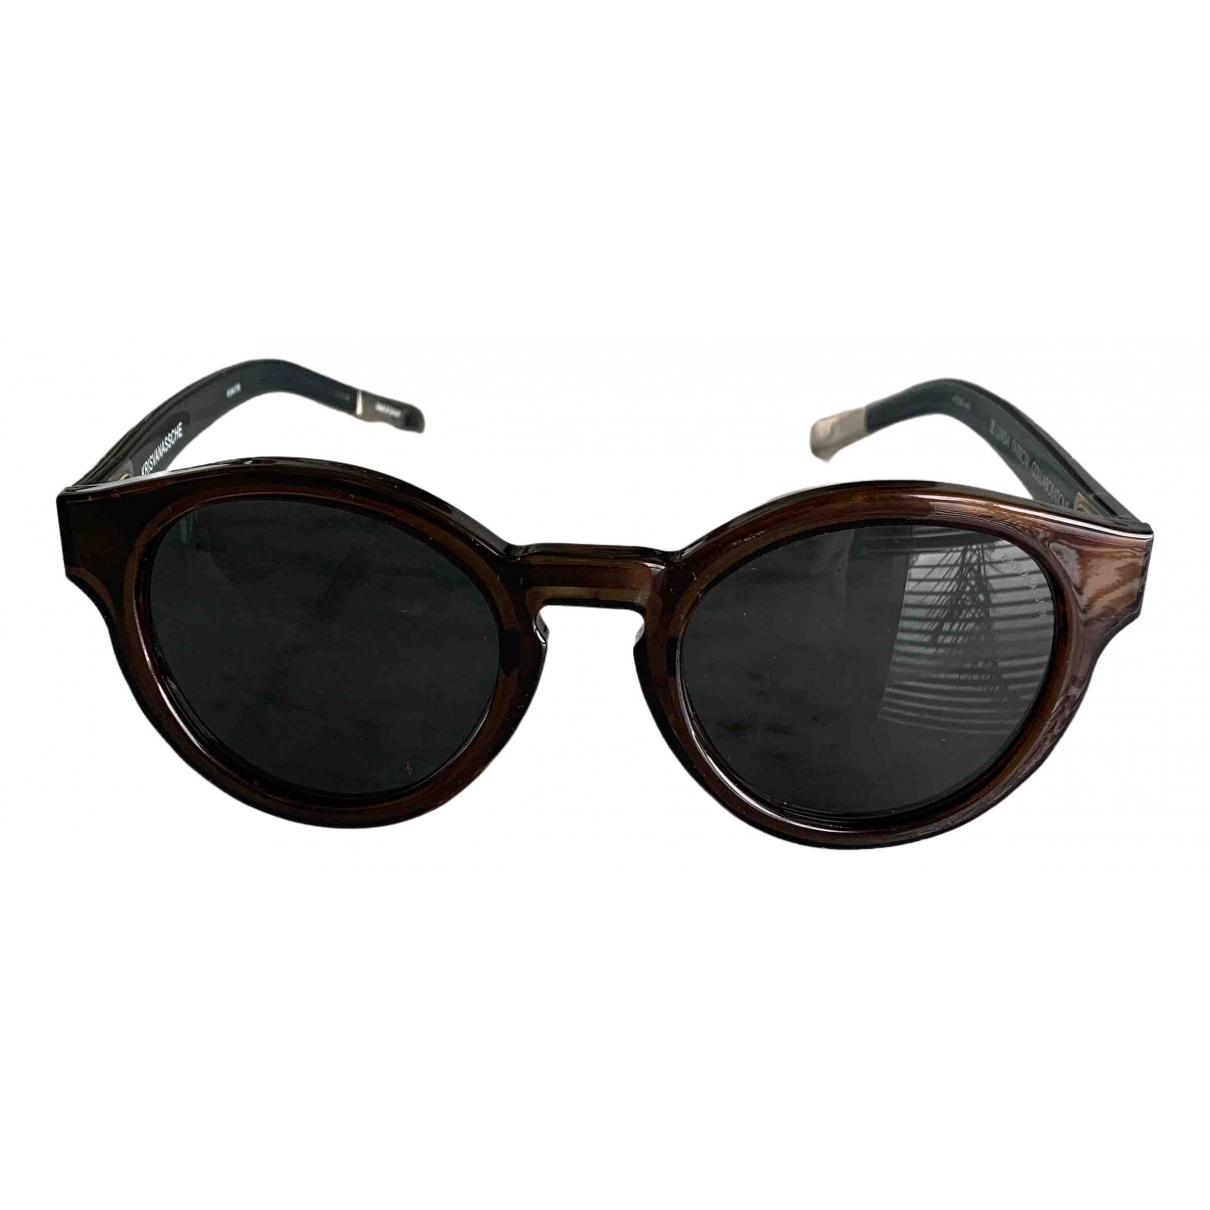 Kris Van Assche \N Brown Sunglasses for Women \N